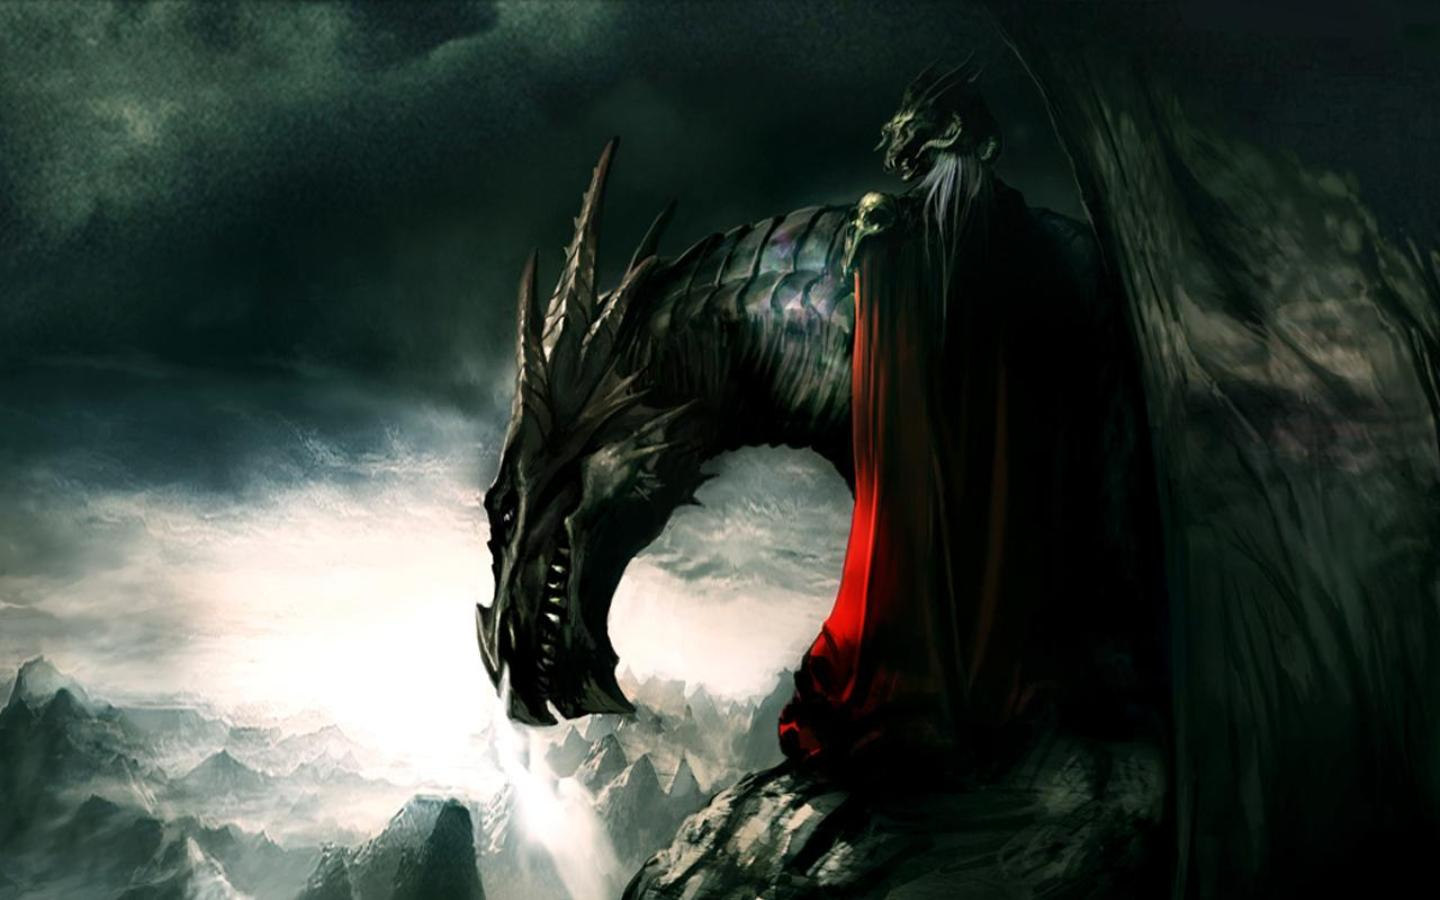 dragon fans out there I found these amazingly cool dragon wallpapers 1440x900